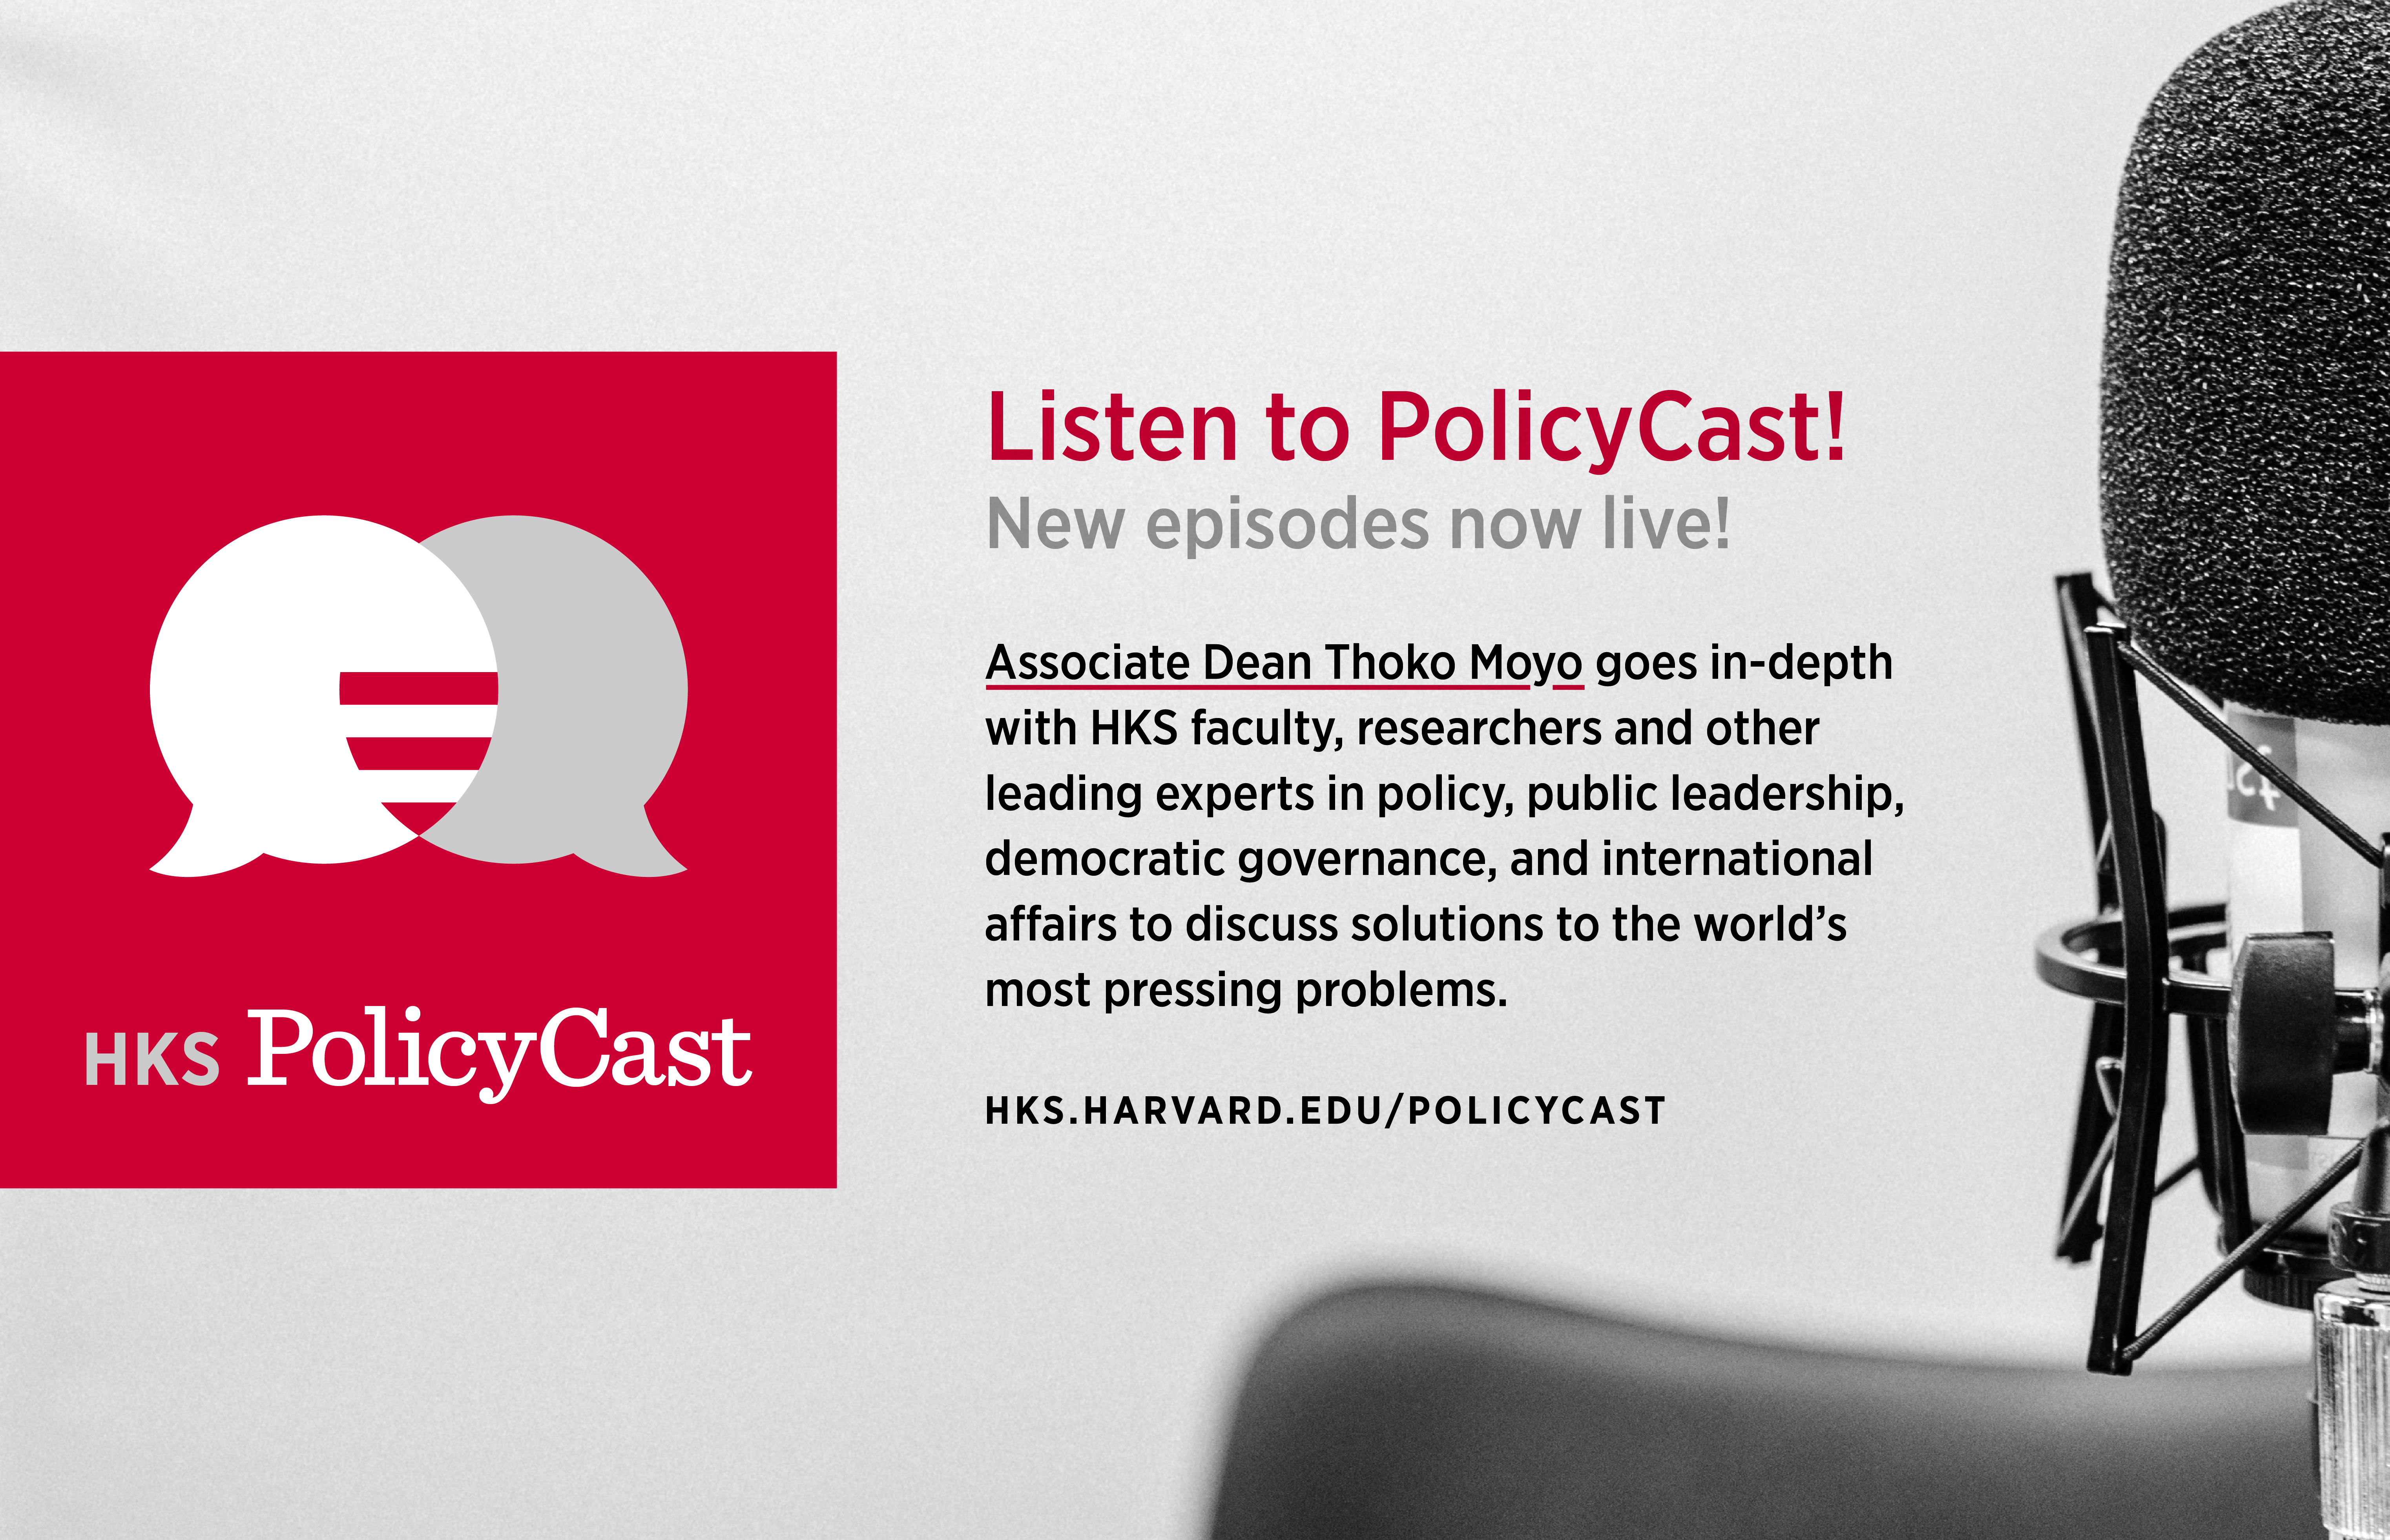 HKS-PolicyCast-Launch-Screen_v1-02